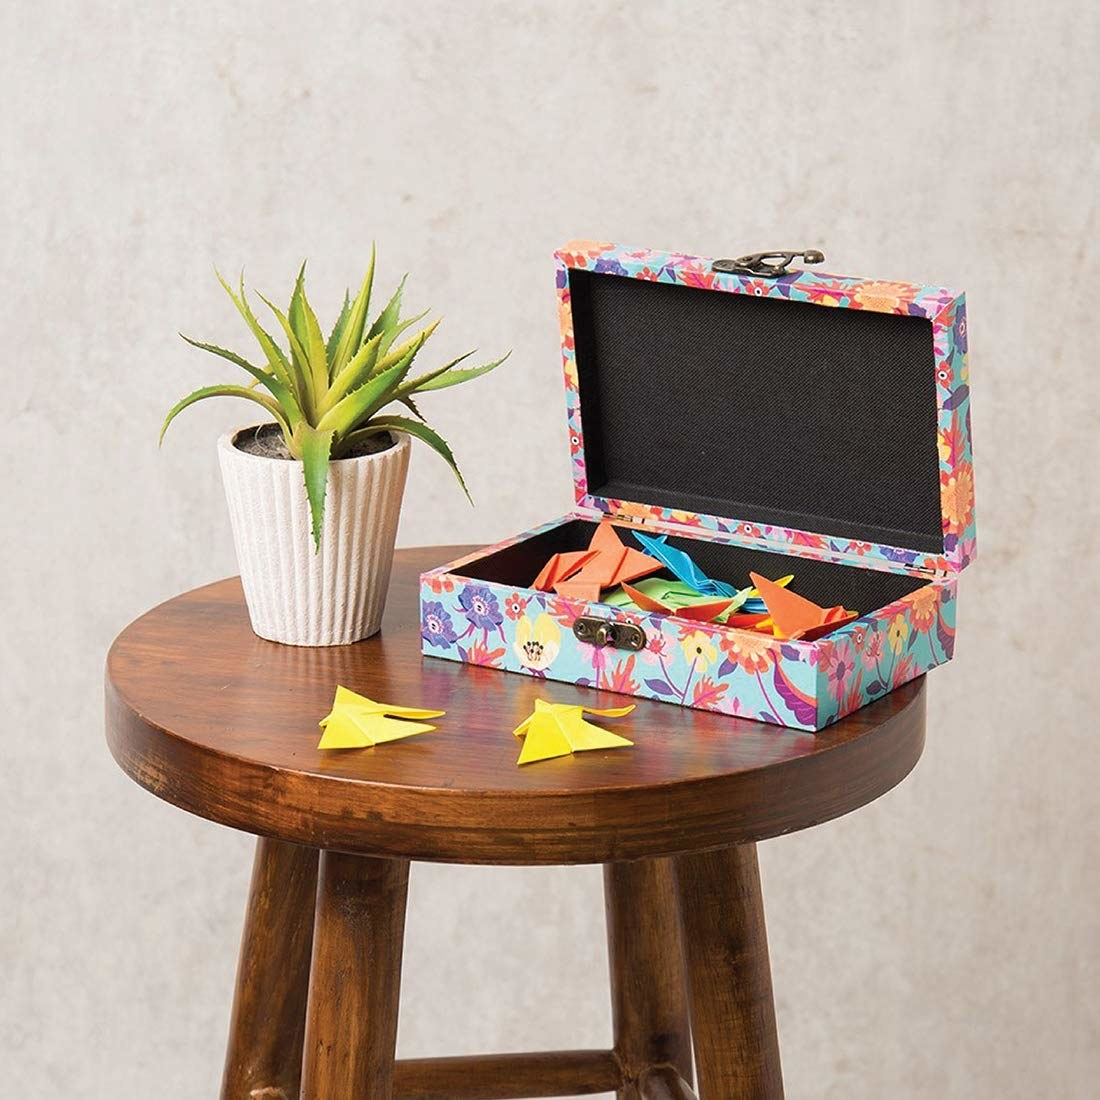 A colourful storage box on a table with paper planes in it